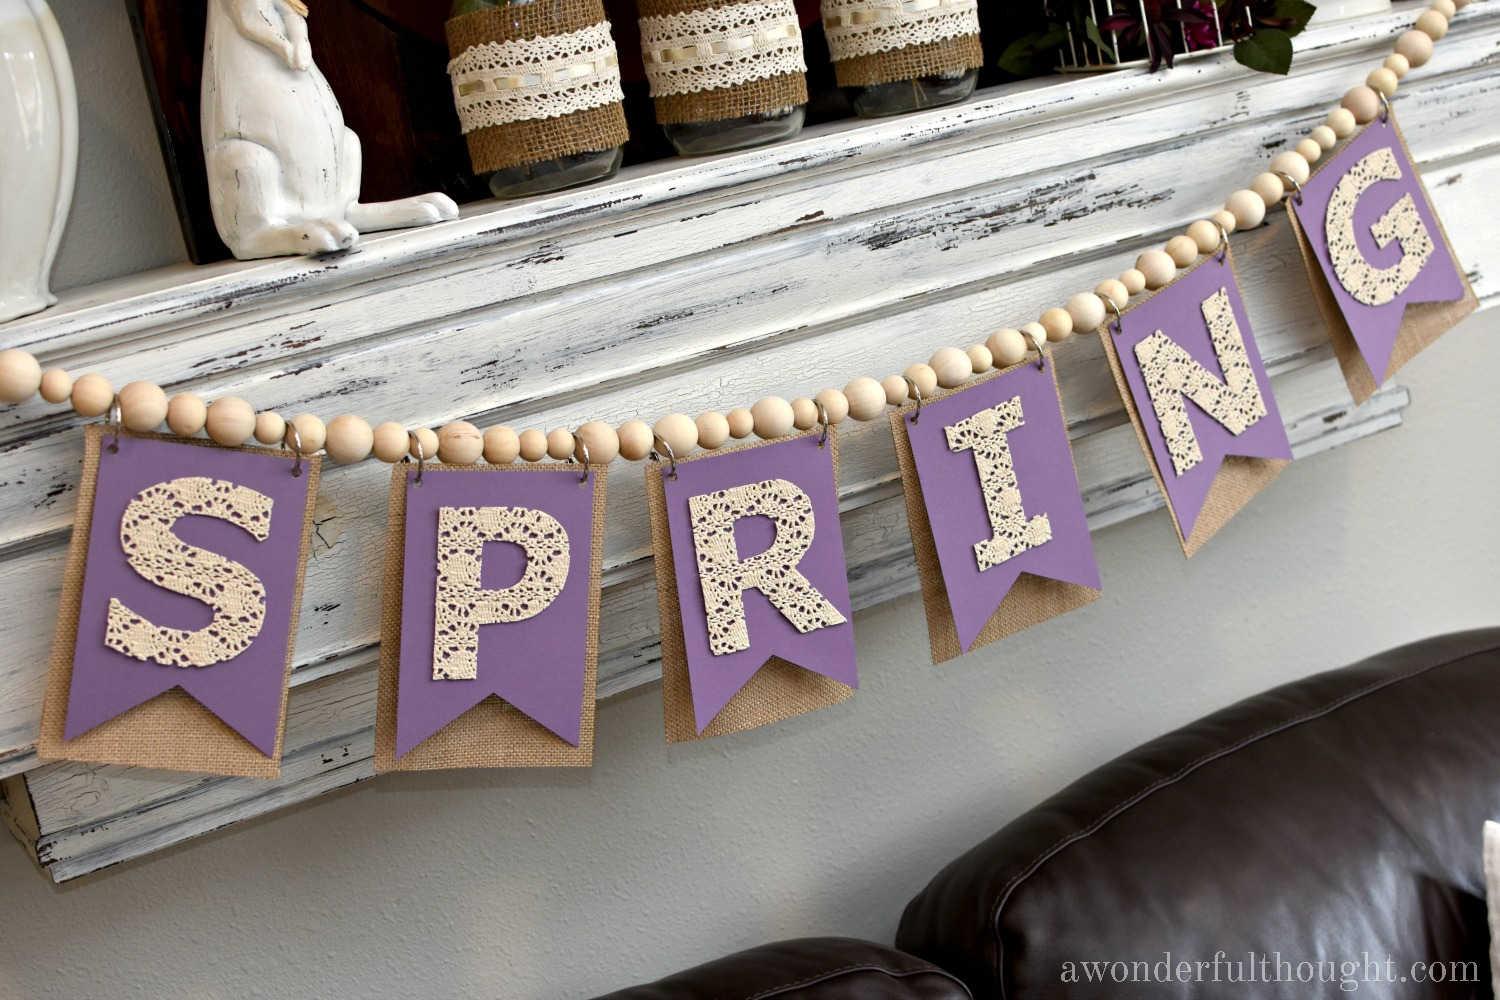 Beaded Cotton Lace Spring Banner | awonderfulthought.com. Make this wooden bead garland and add some lace letters for the perfect spring decoration!